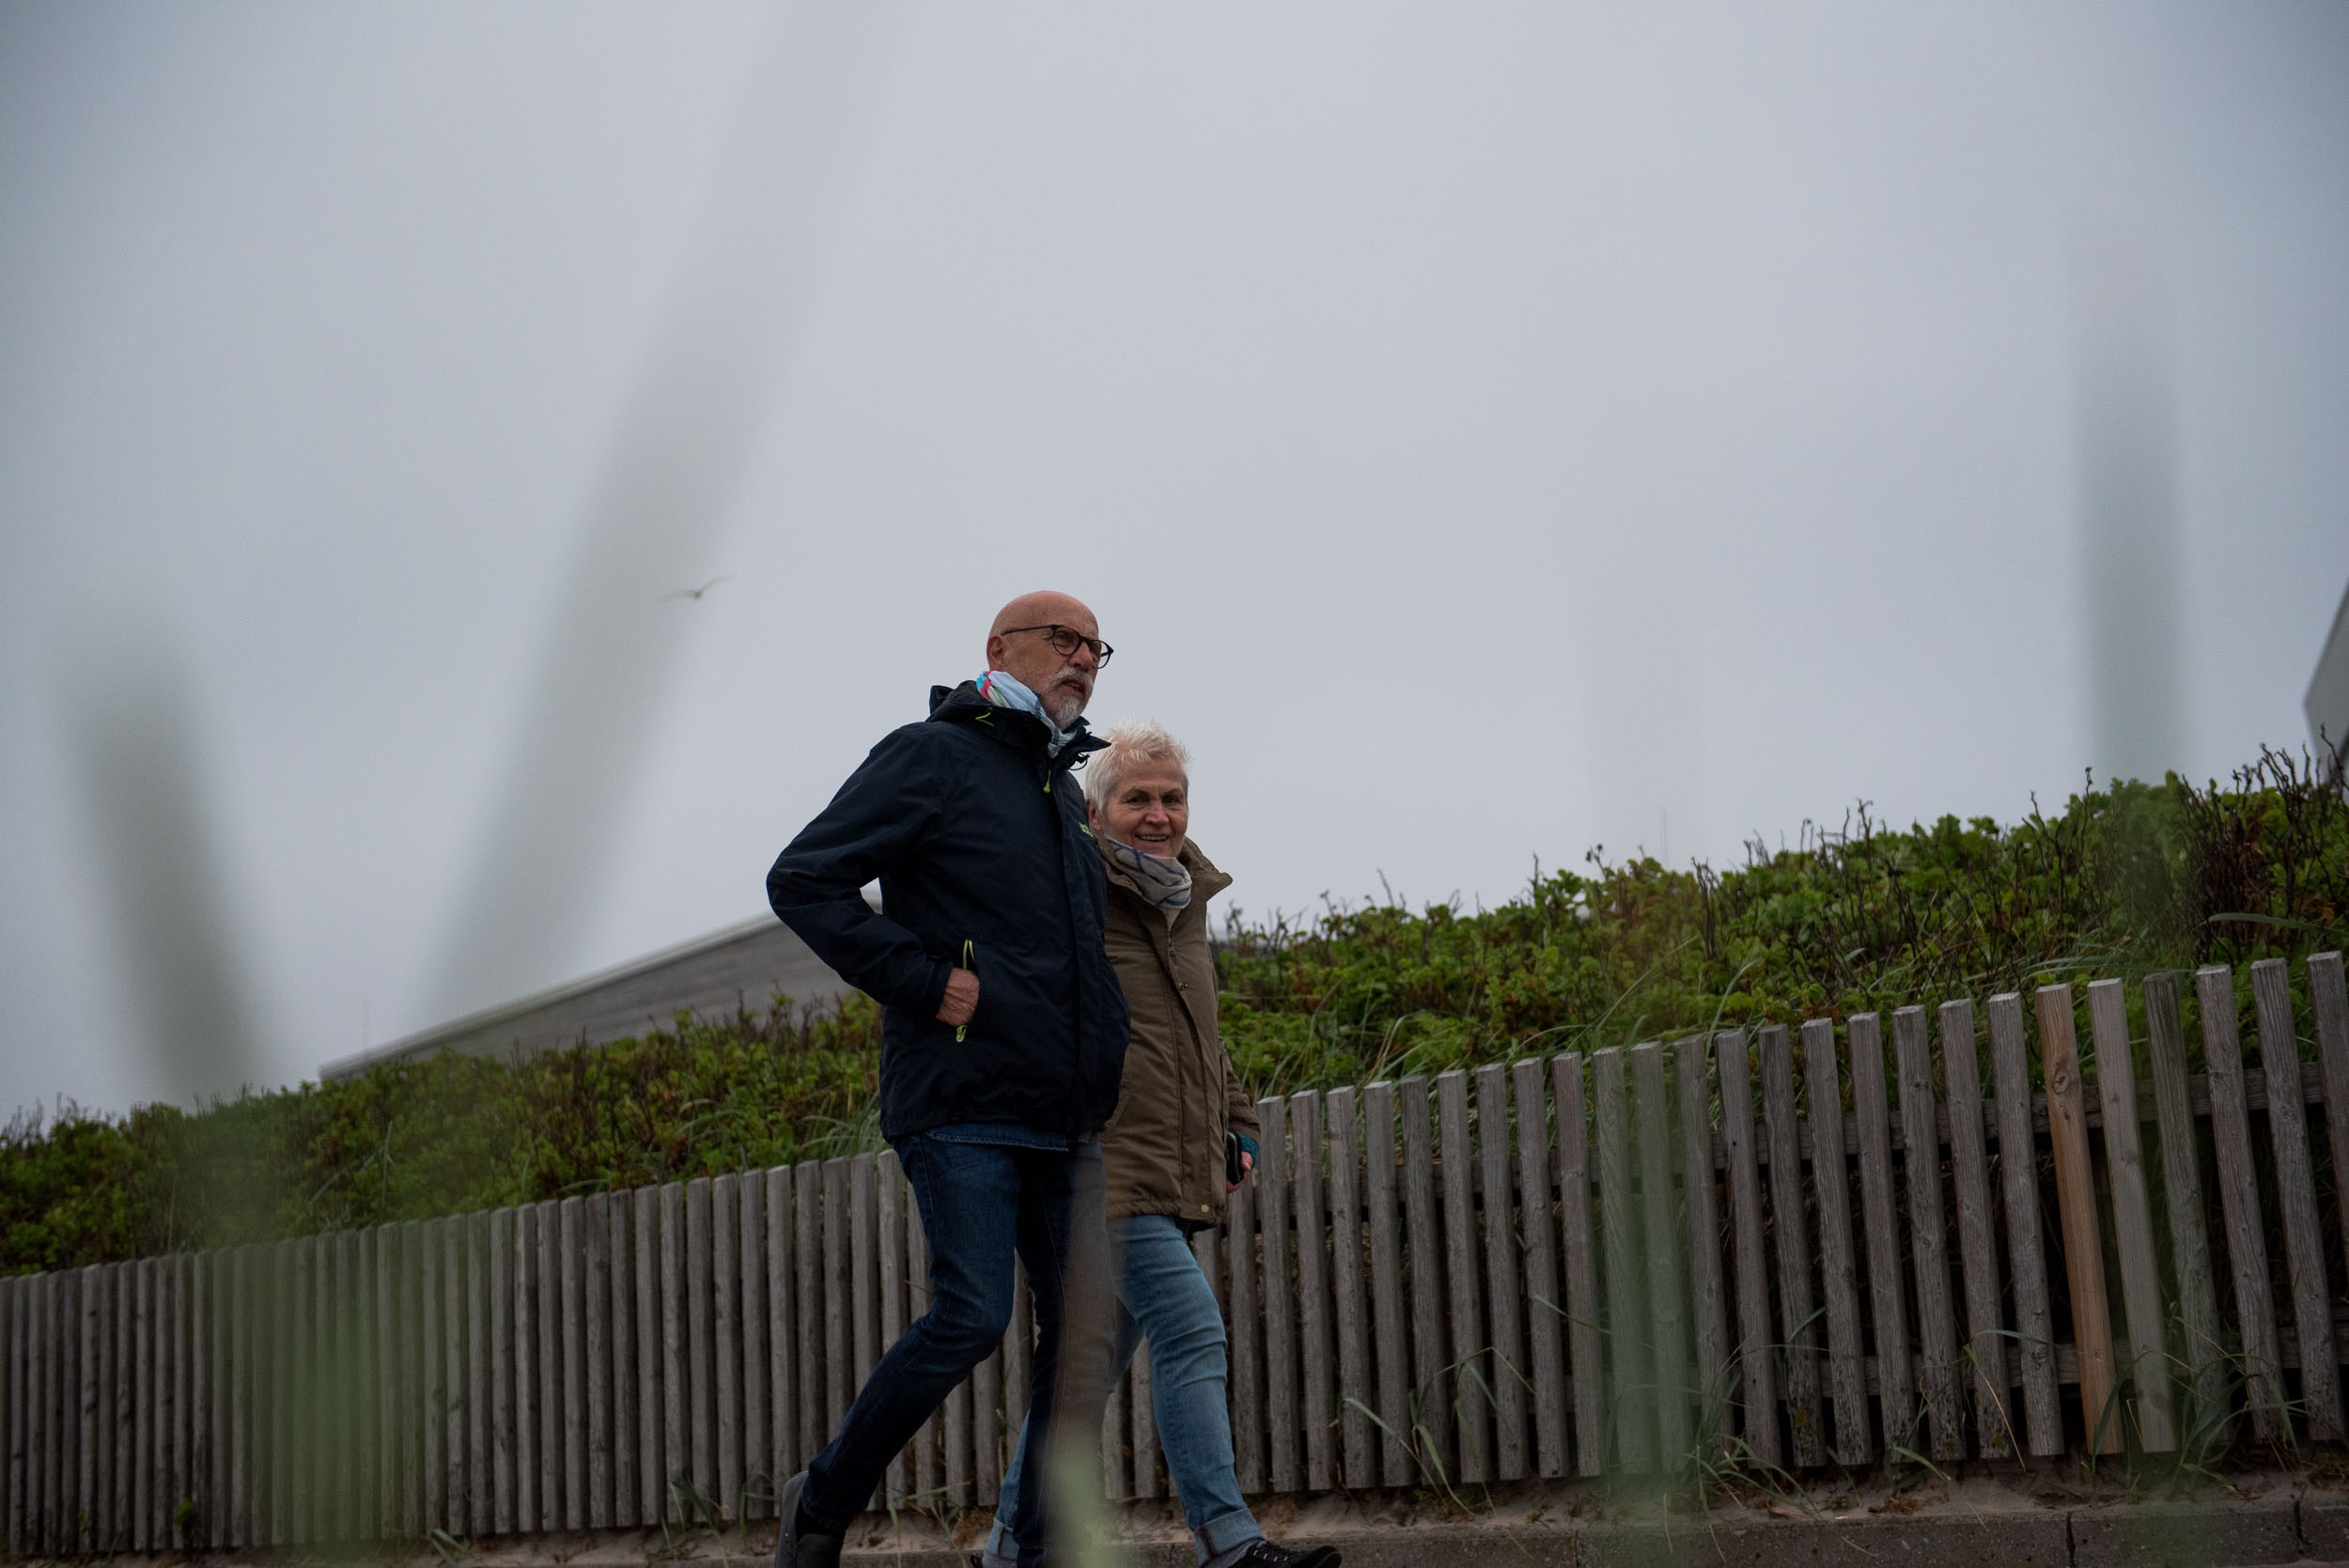 Mom and dad's first evening promenade walk on Sylt. Westerland, Germany, May 21, 2019.